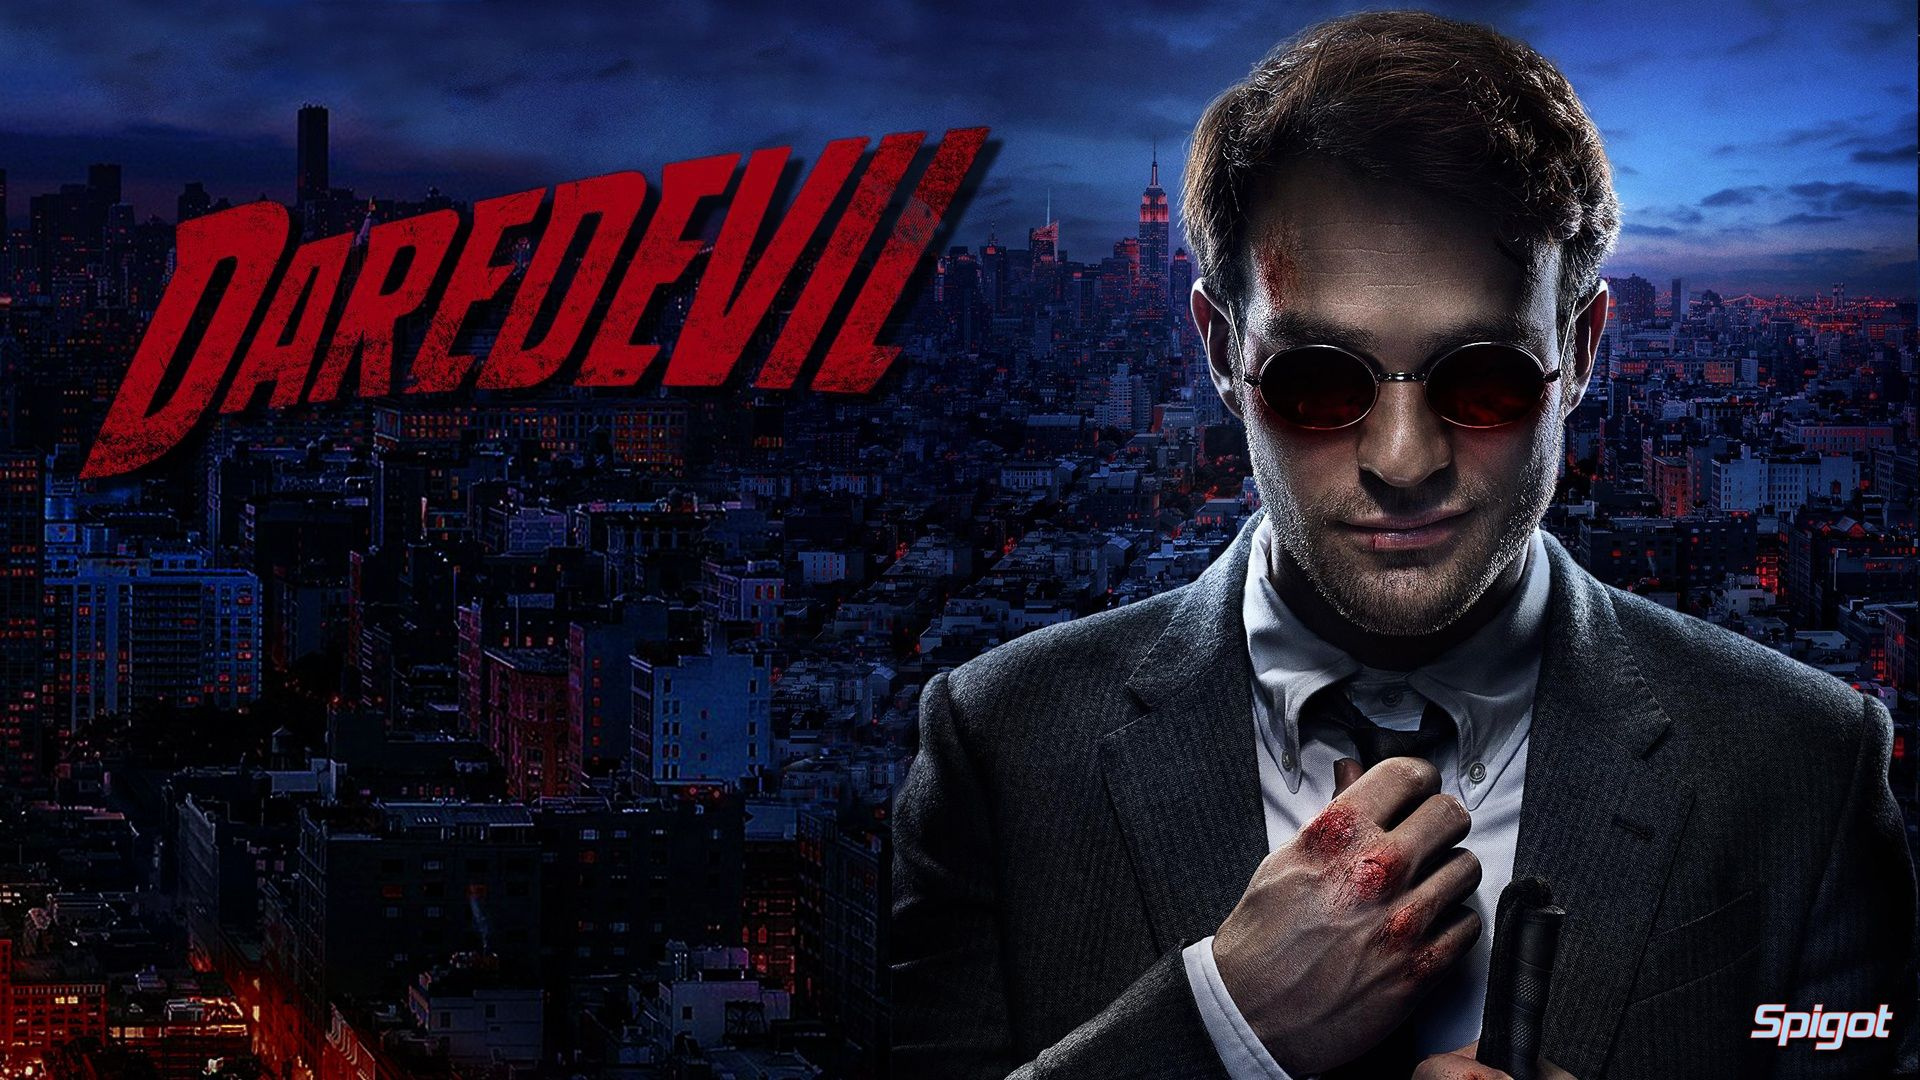 Daredevil Netflix Wallpaper Daredevil Tv Daredevil Tv